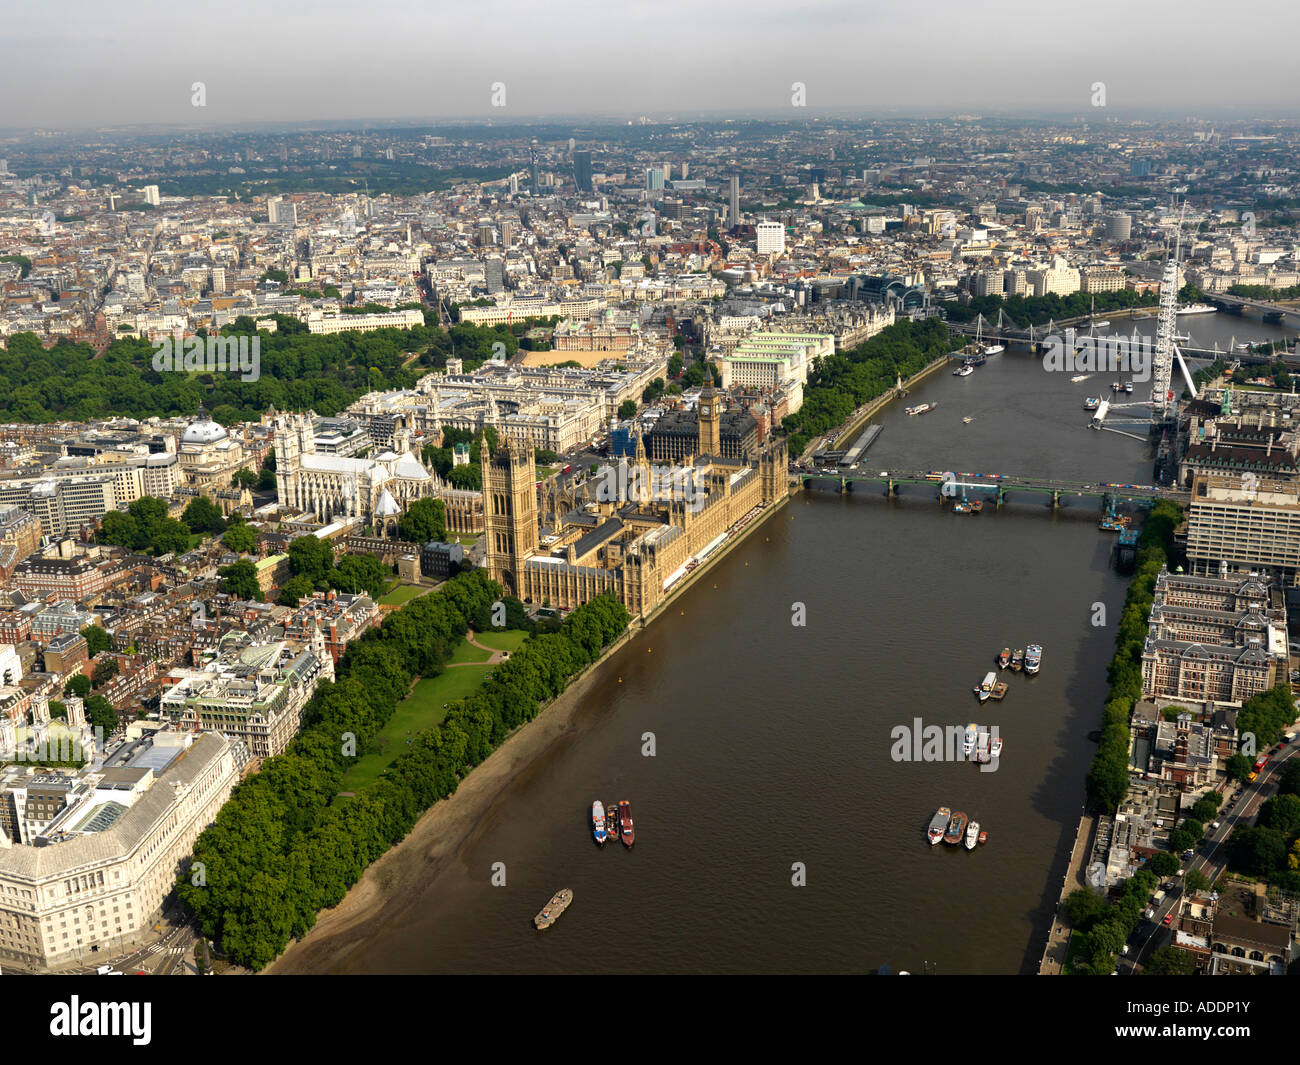 Aerial of London showing Westminster and the River Thames. Stock Photo